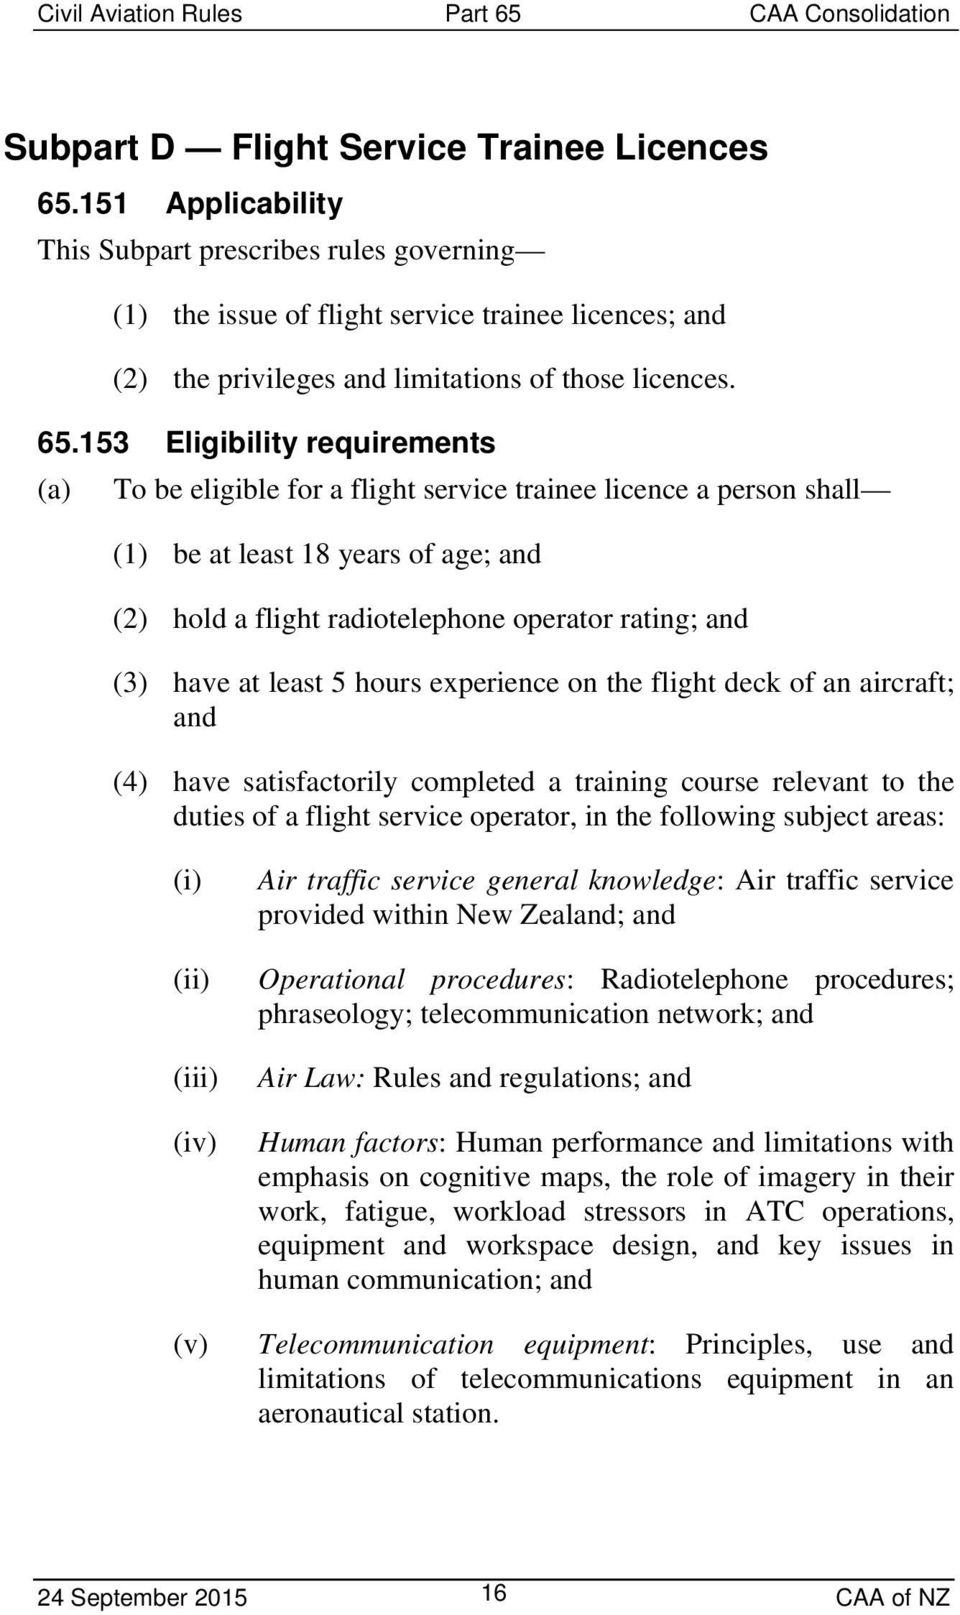 153 Eligibility requirements (a) To be eligible for a flight service trainee licence a person shall (1) be at least 18 years of age; and (2) hold a flight radiotelephone operator rating; and (3) have